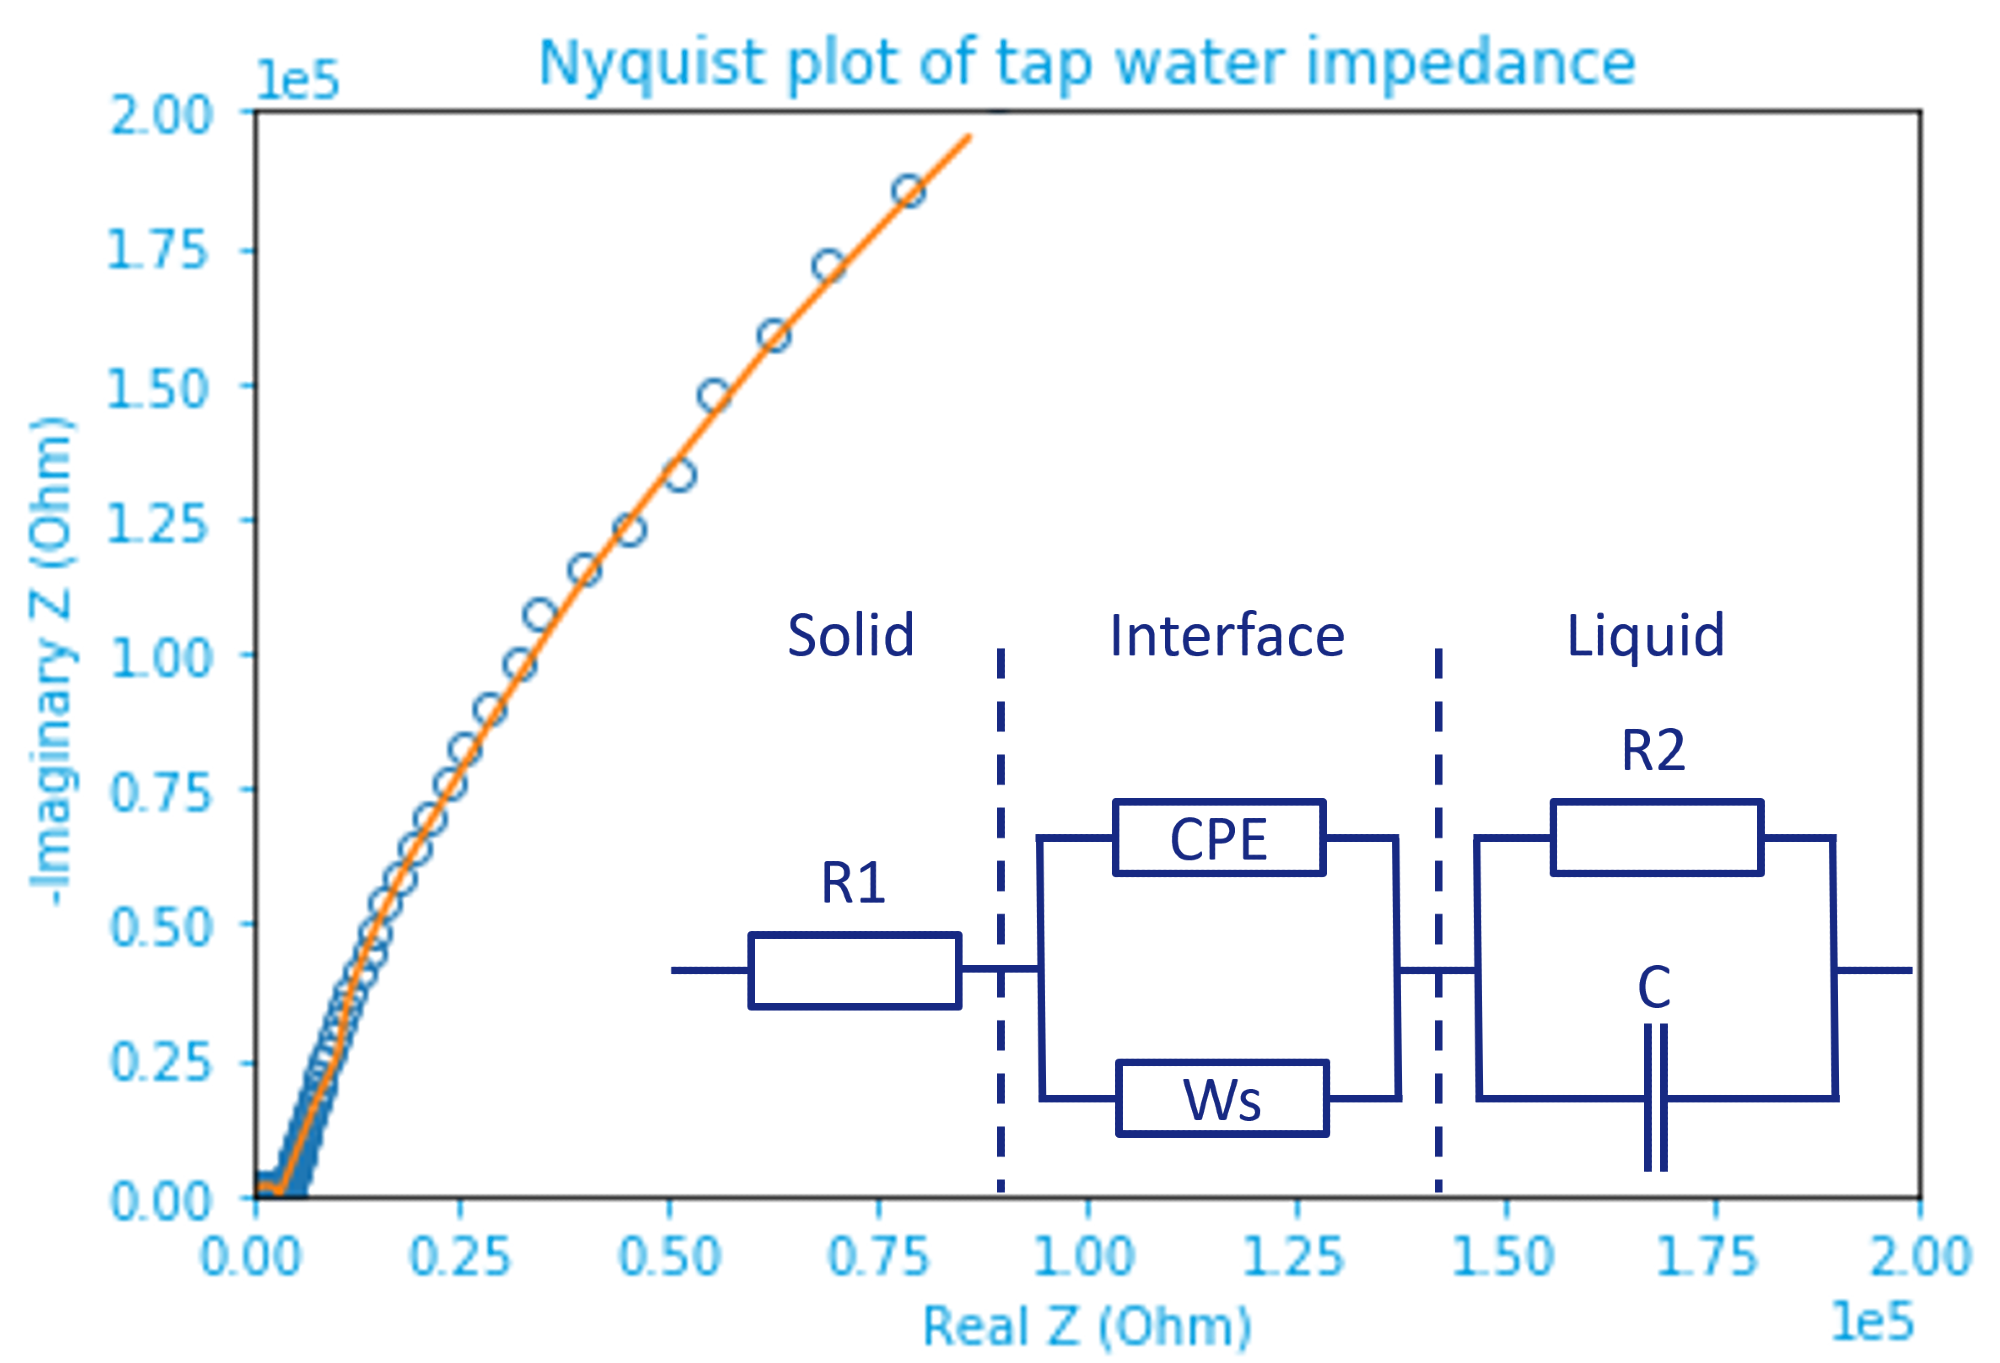 Nyquist plotof tap water impedancefitted by the inset equivalent circuit model. Raw data are marked by open dots and the fitting result represented by an orange line. The inset circuit shows solid(electrode)-liquid(electrolyte) (inter)phases separated by dashed lines.